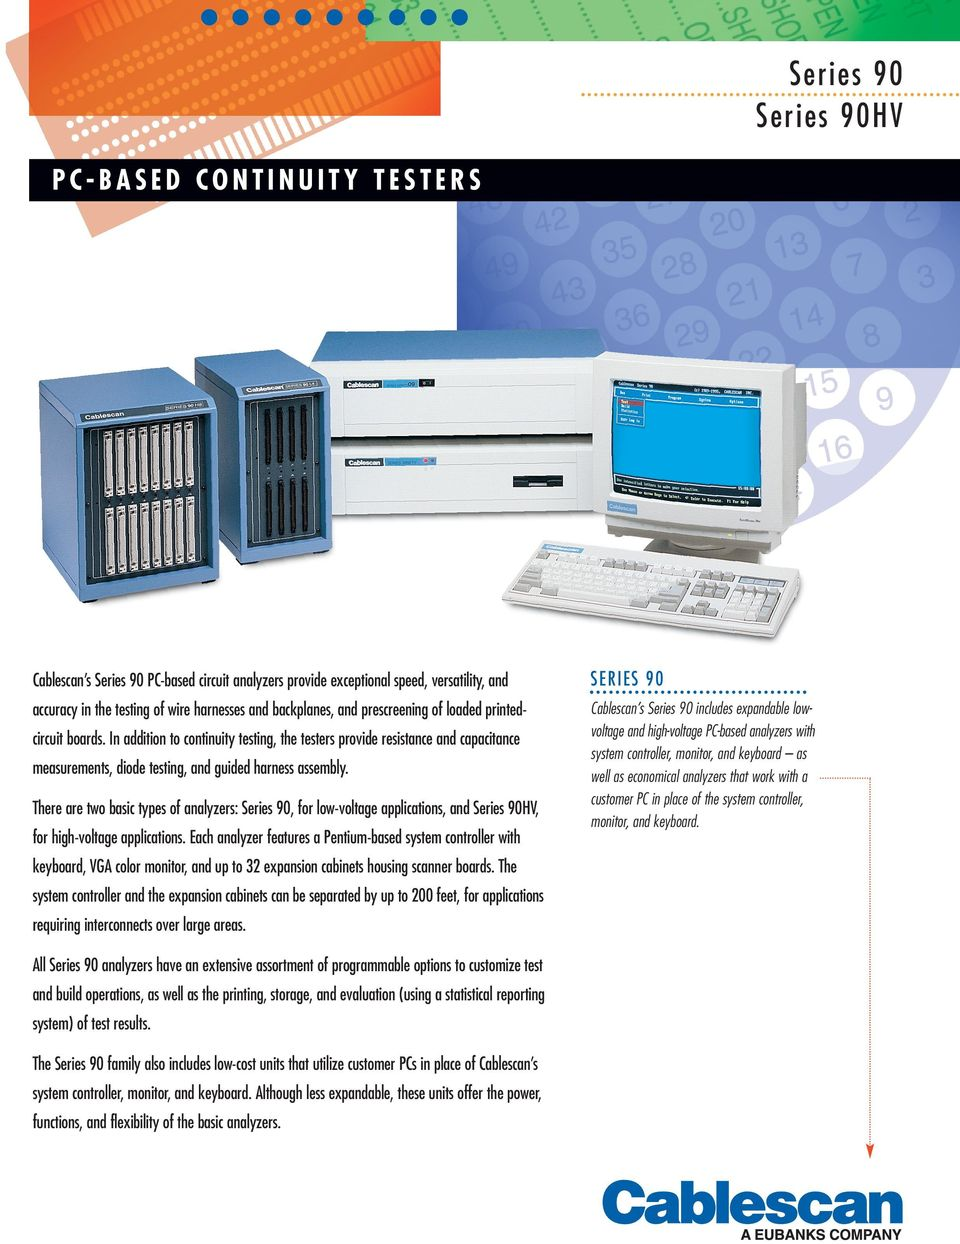 Series 90 90hv Pdf How To Make A Continuity Tester Circuit Economical Analyzers That Work With Customer Pc In Place Of The System Controller Monitor